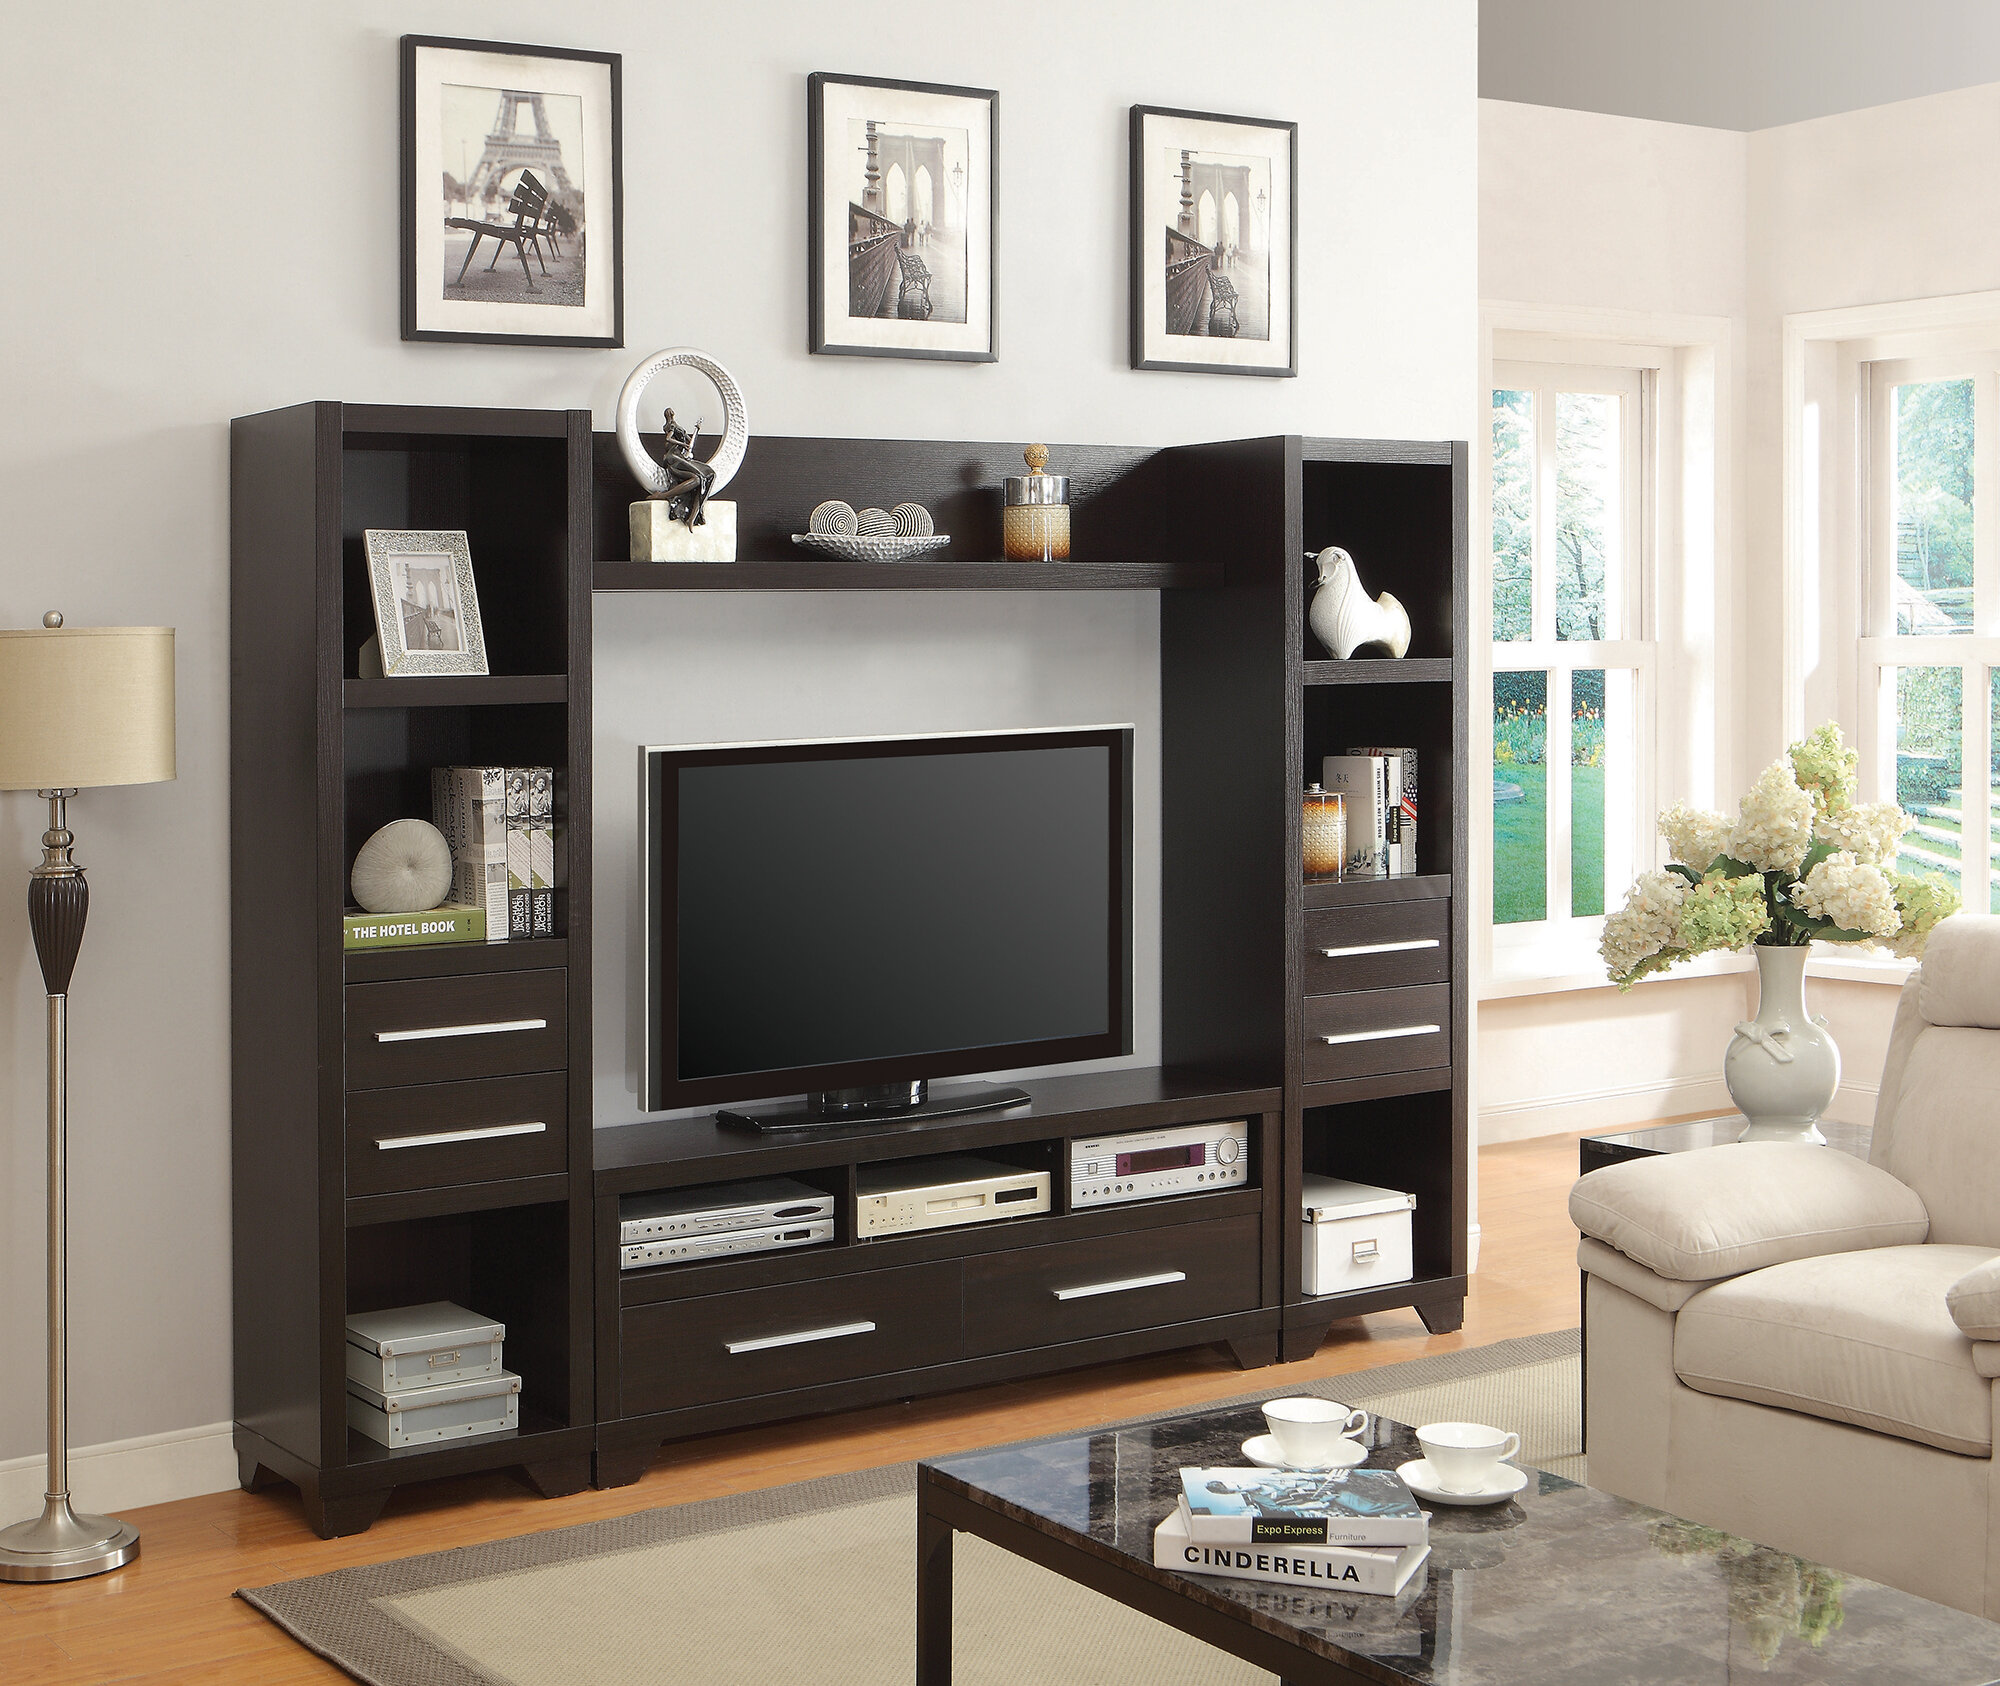 Expo Tv Stands : Tv stand with tilting swiveling bracket fits monitors u d